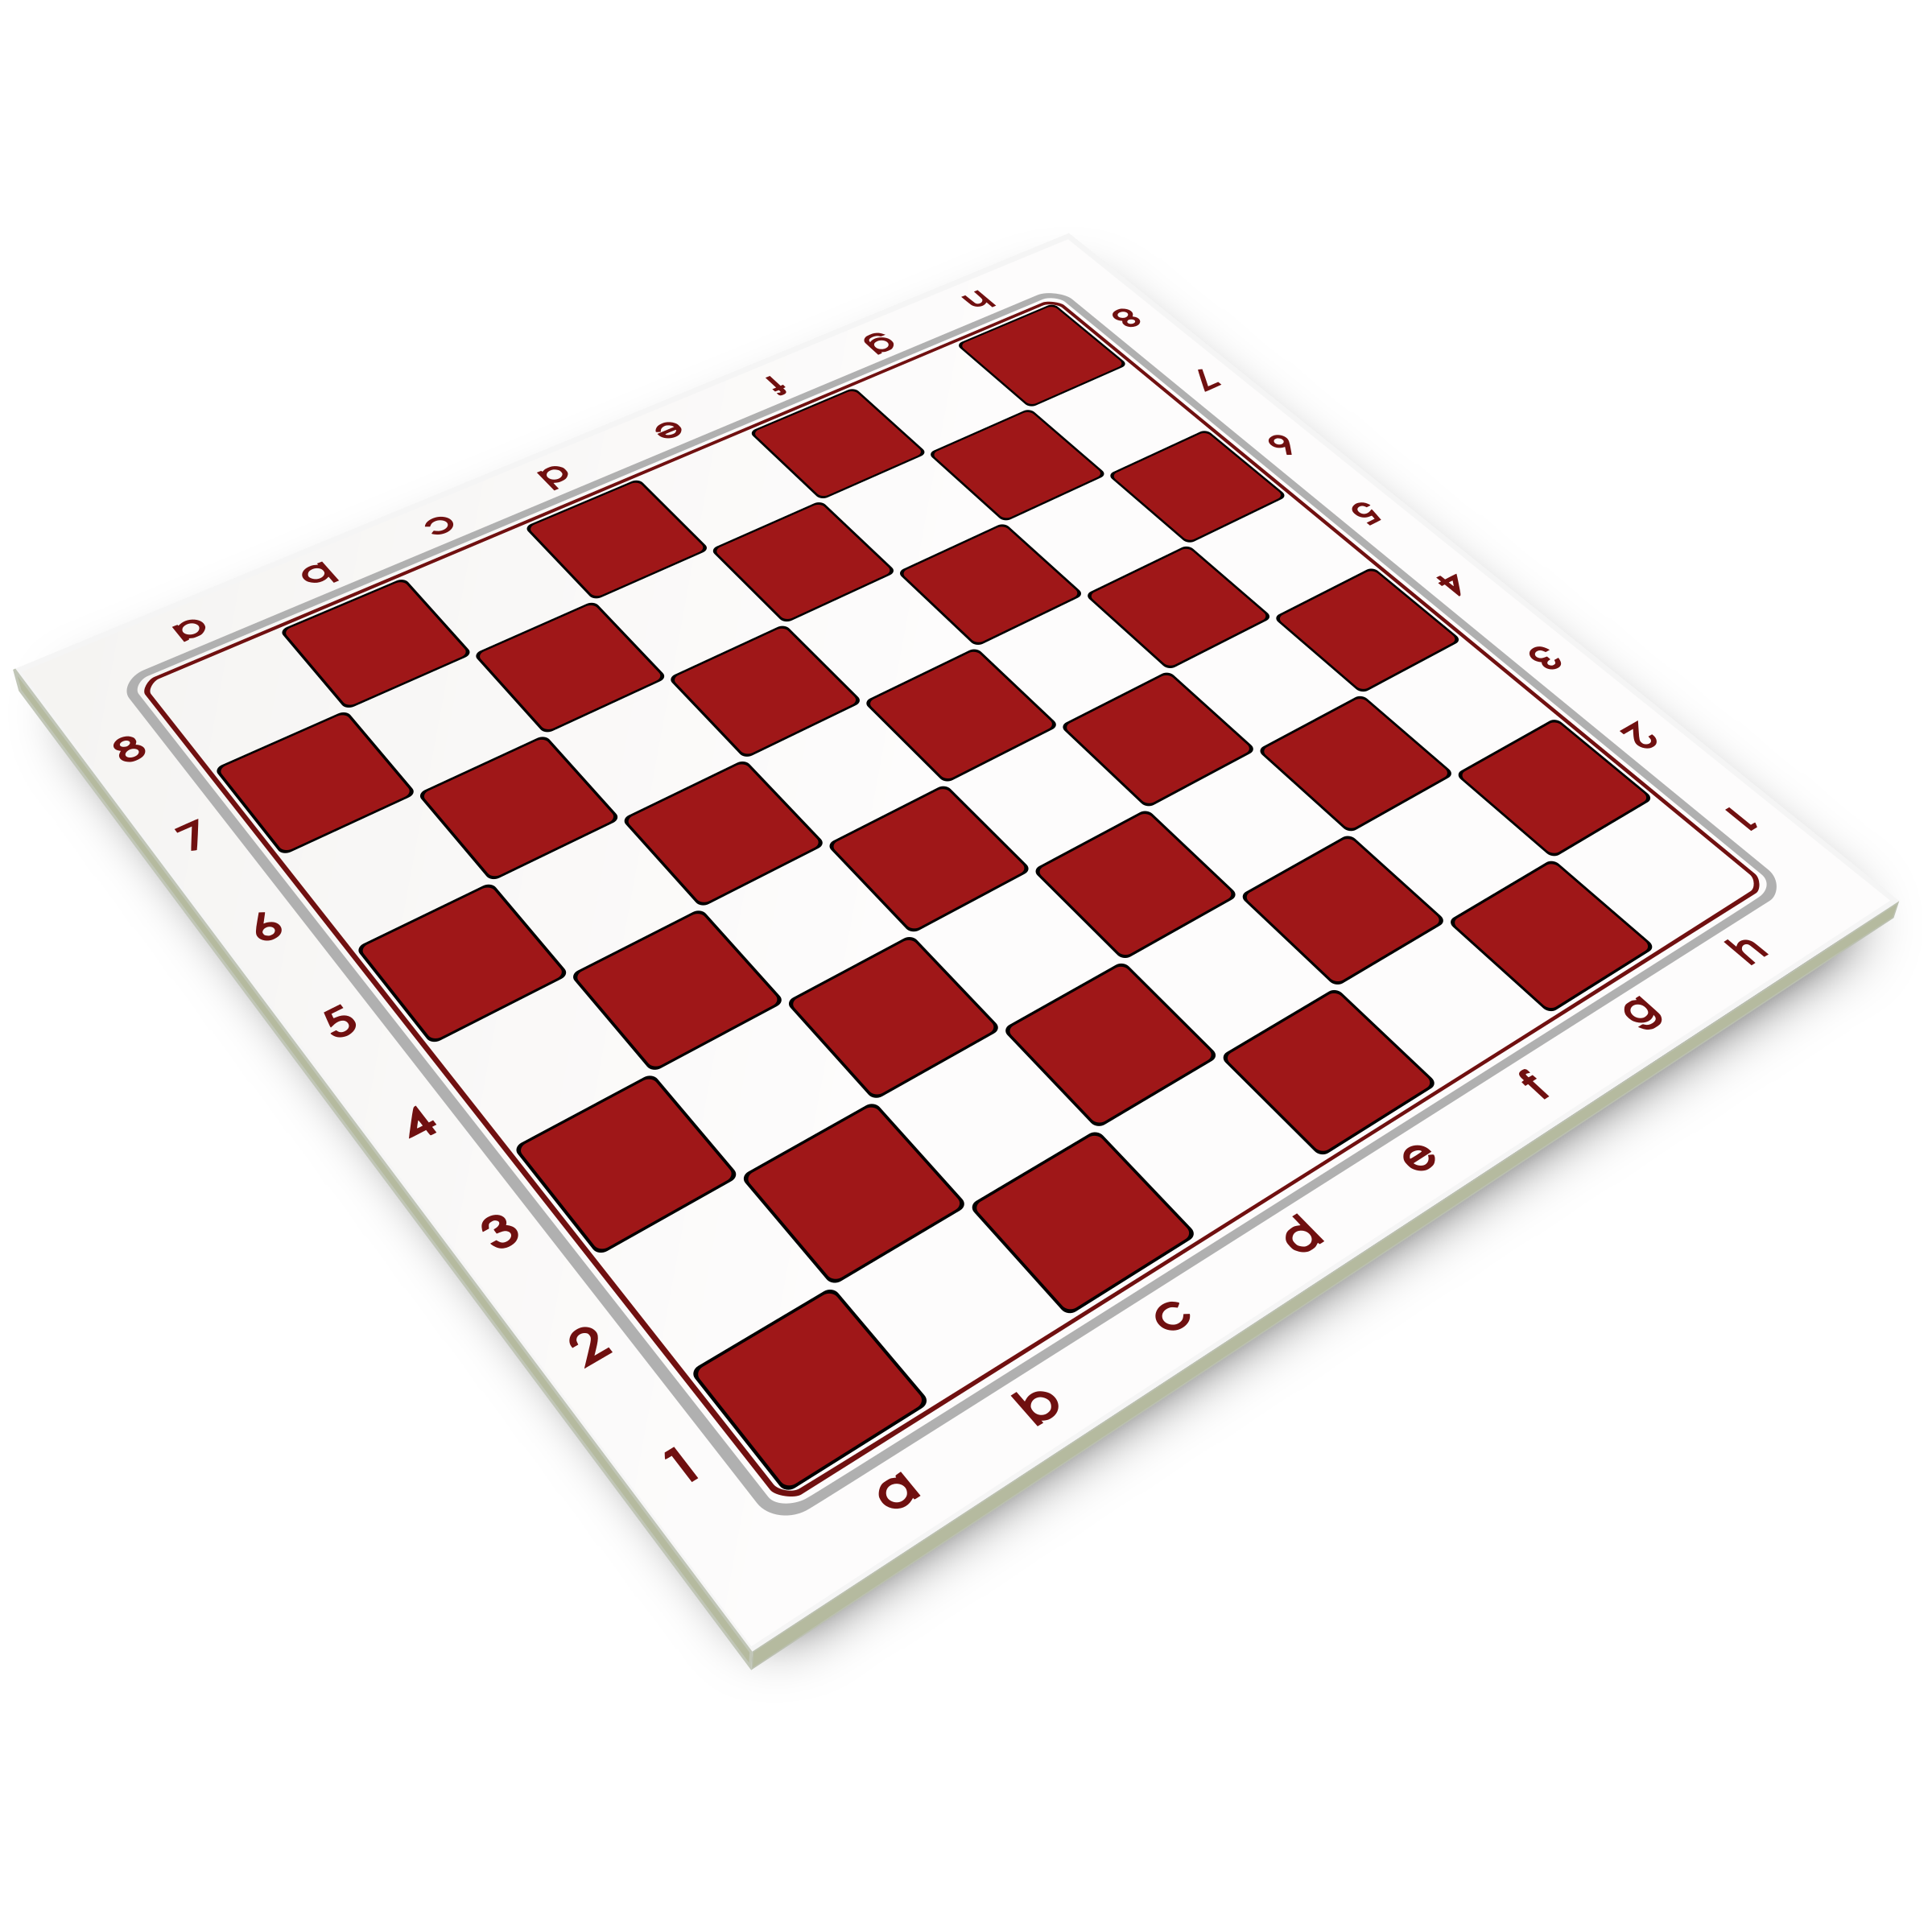 Chessboard in Half-way Perspective / Tablero en Perspectiva Semi-lateral by DG-RA